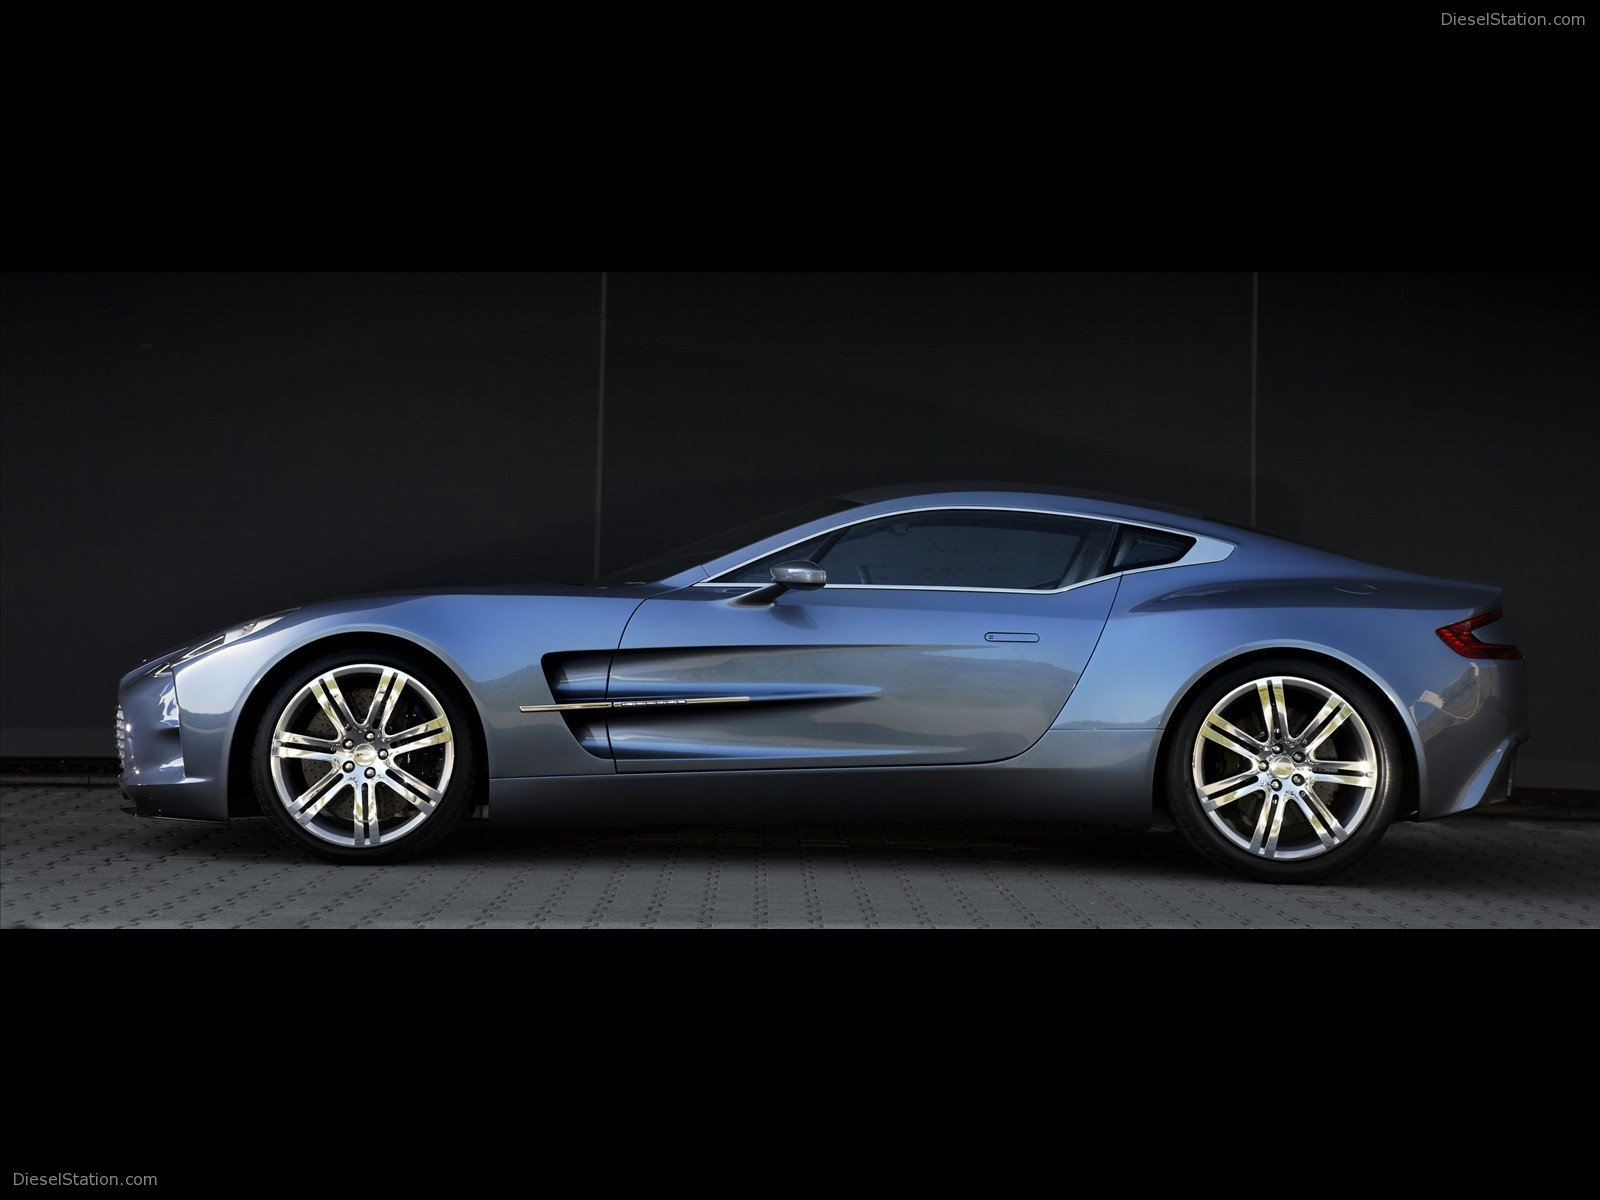 Aston Martin One 77 Background For Pictures